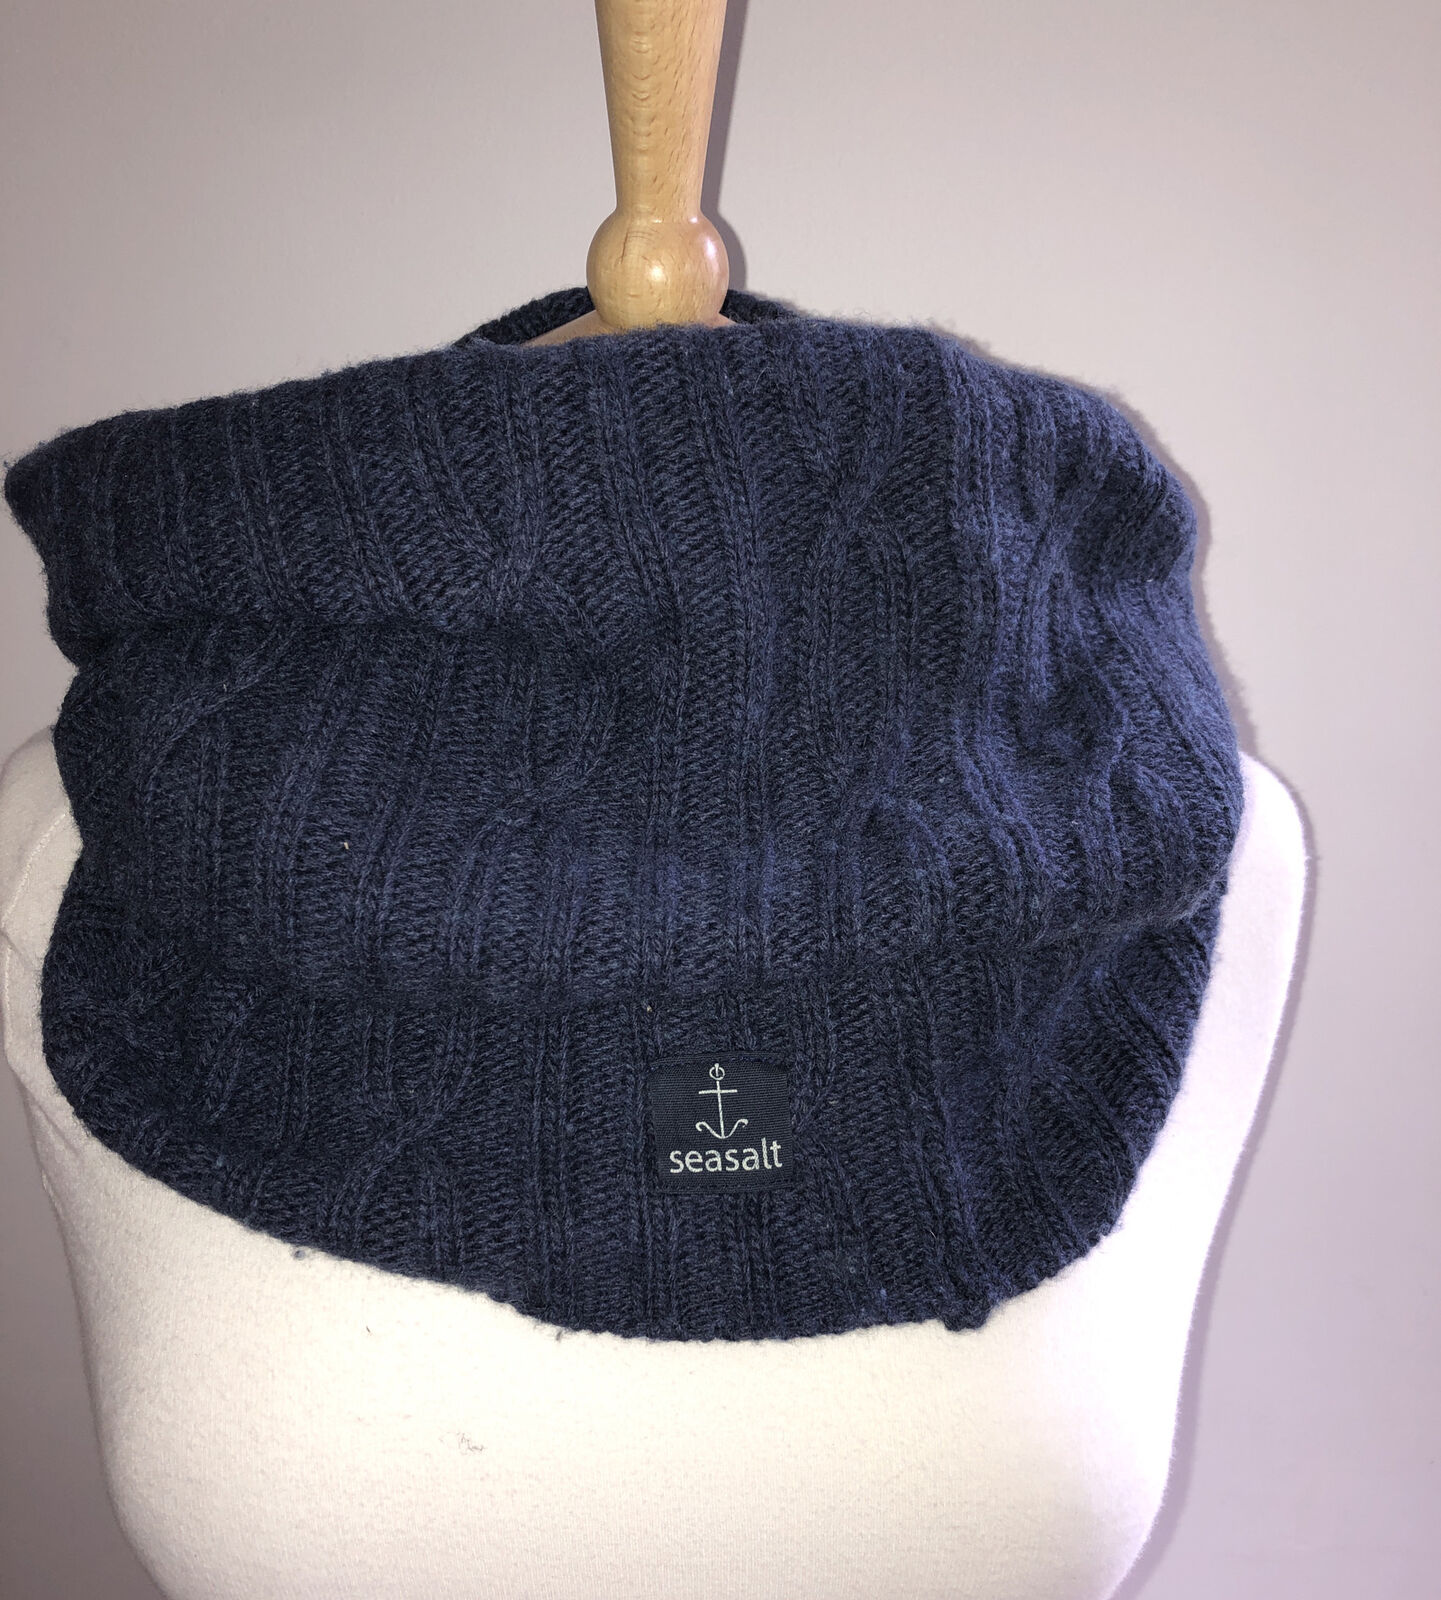 Seasalt Knitted Snood Navy Chunky Big Knit 🧶